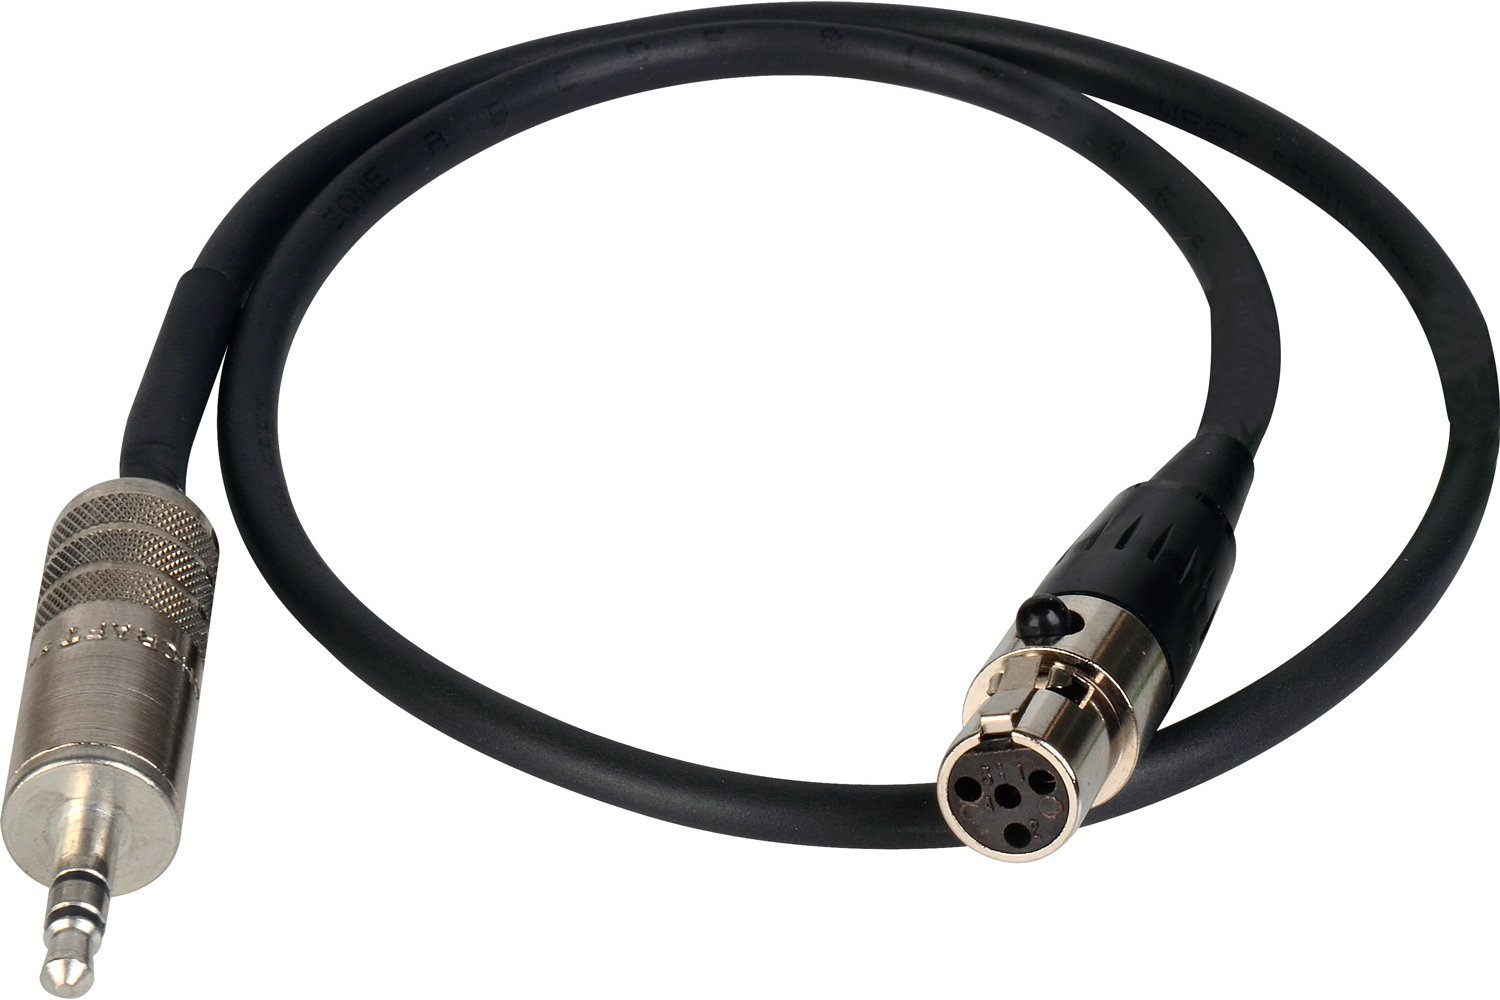 3 ft XLRF to 3.5mm Stereo Cable